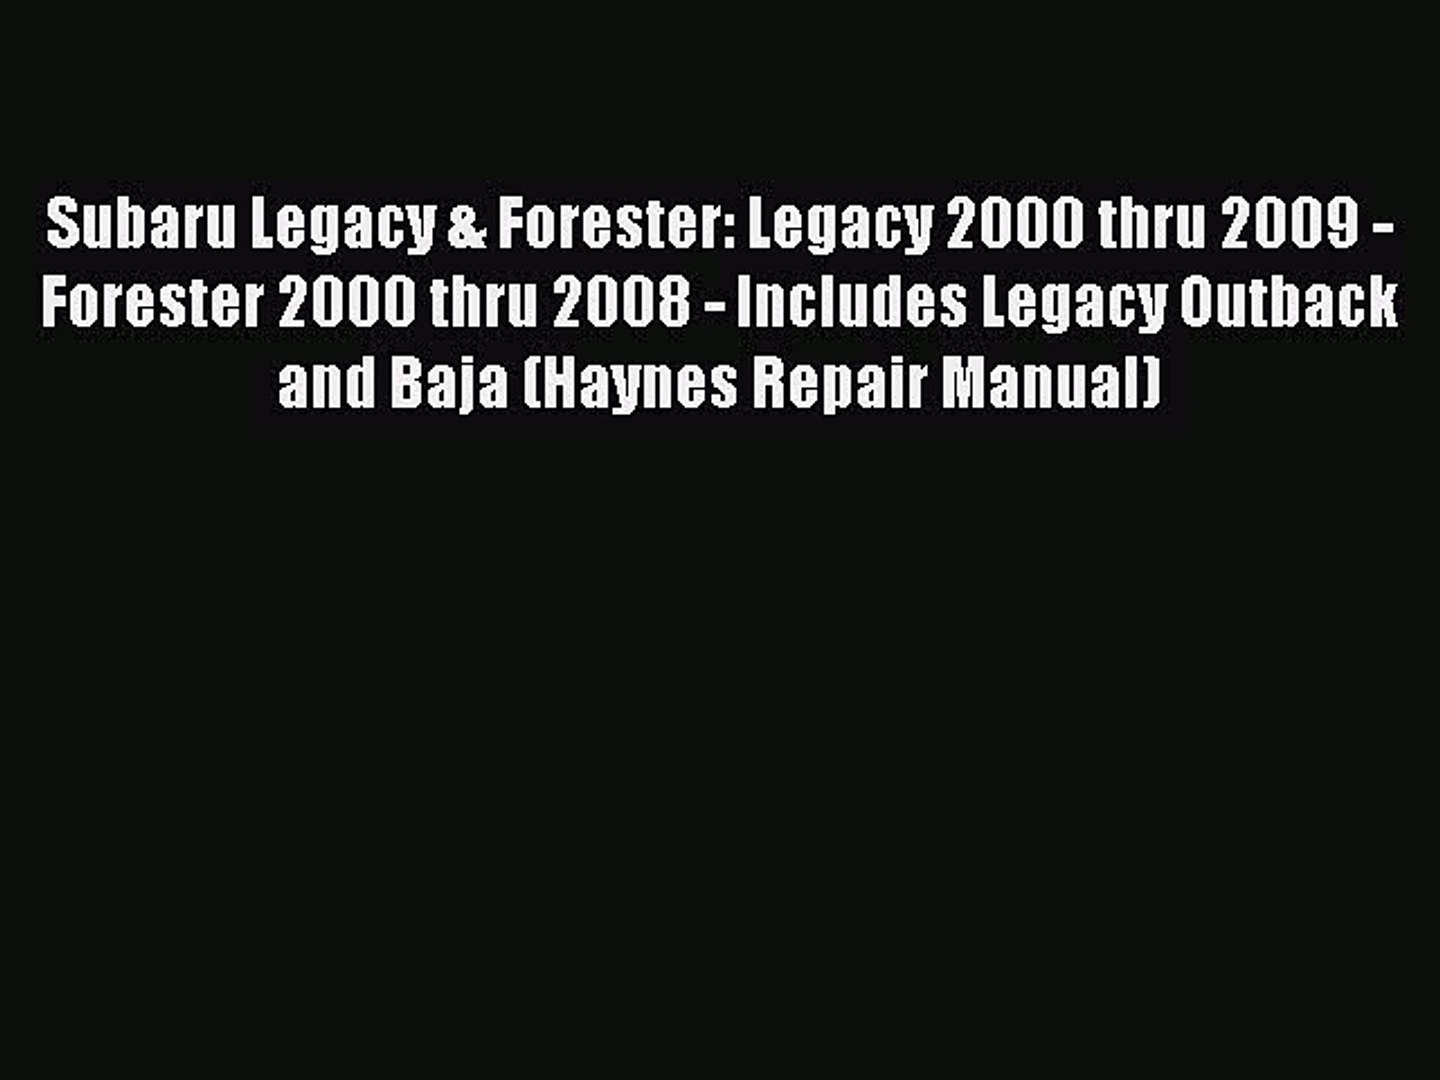 Download Subaru Legacy & Forester: Legacy 2000 thru 2009 - Forester 2000 thru 2008 - Includes